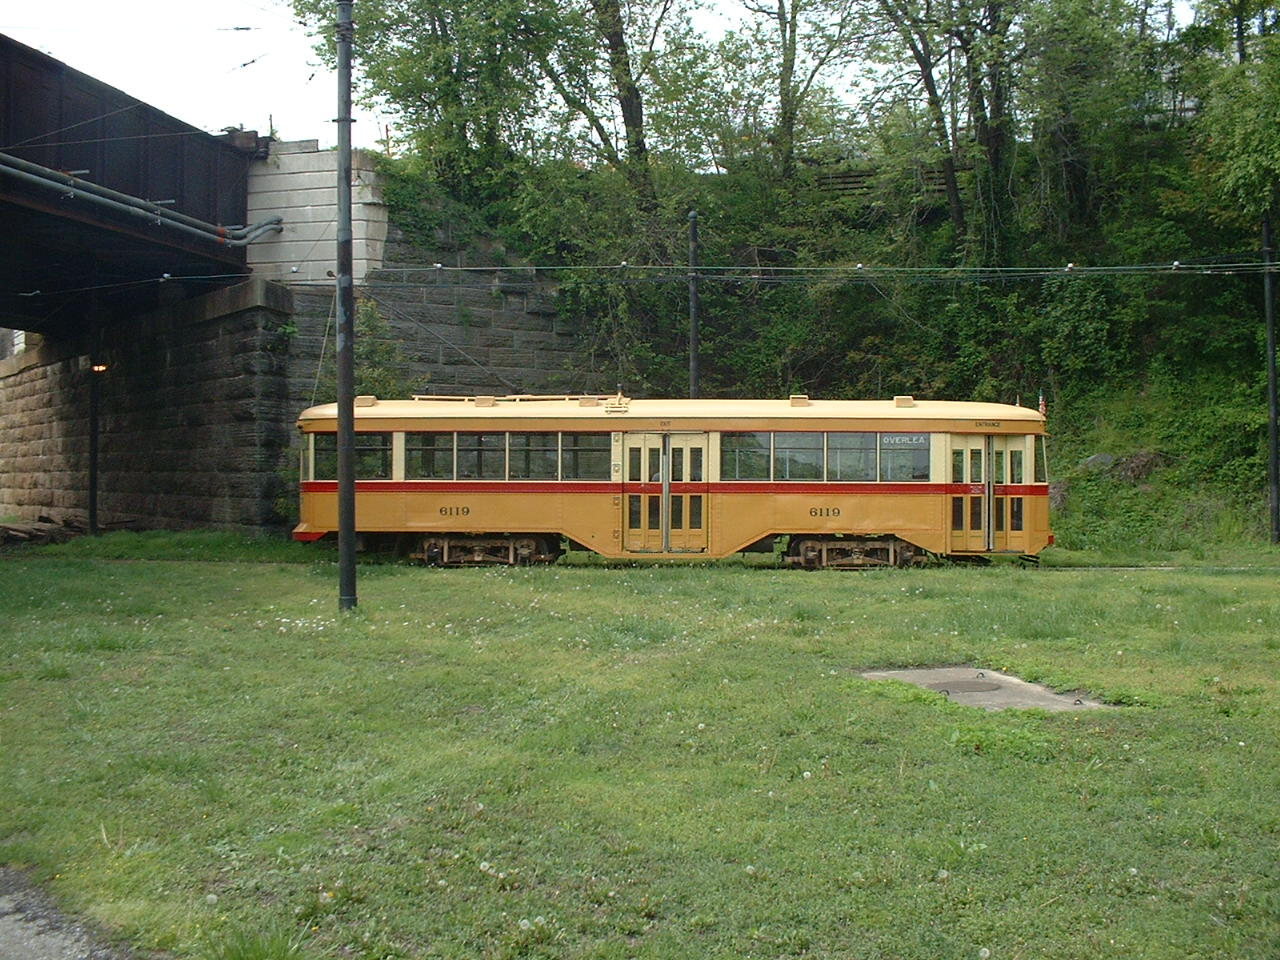 (300k, 1280x960)<br><b>Country:</b> United States<br><b>City:</b> Baltimore, MD<br><b>System:</b> Baltimore Streetcar Museum <br><b>Car:</b>  6119 <br><b>Photo by:</b> Dan Lawrence<br><b>Date:</b> 4/27/2002<br><b>Notes:</b> BSM 6119 at North Avenue Loop<br><b>Viewed (this week/total):</b> 4 / 3291